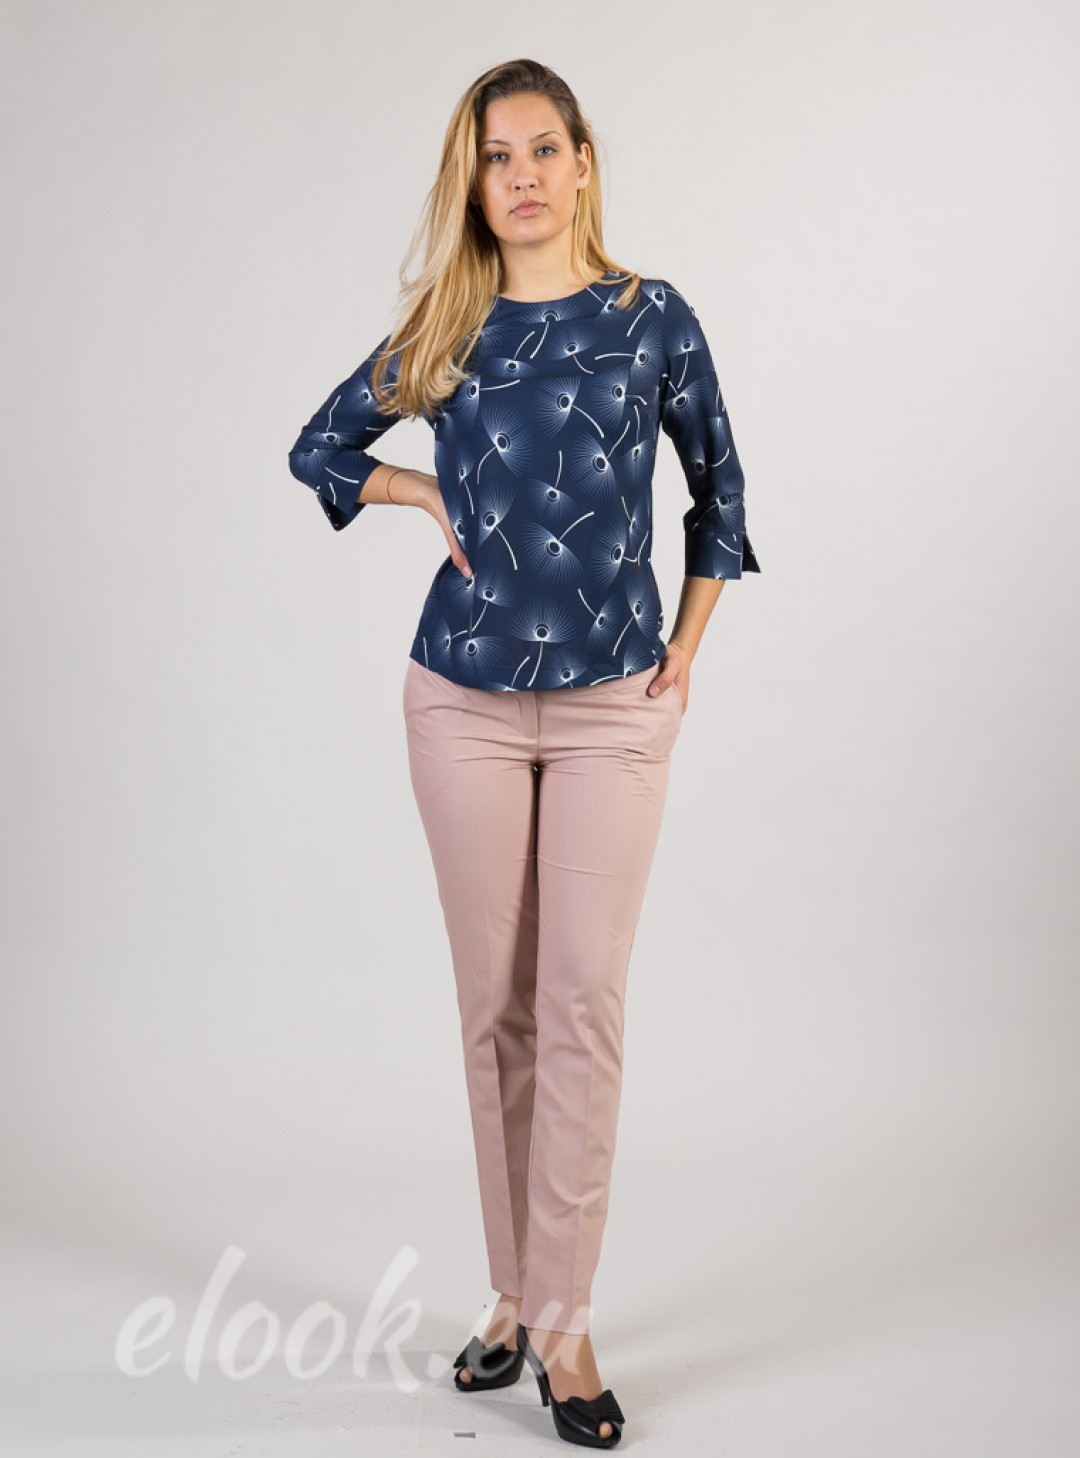 Blouse with a print motif of s...